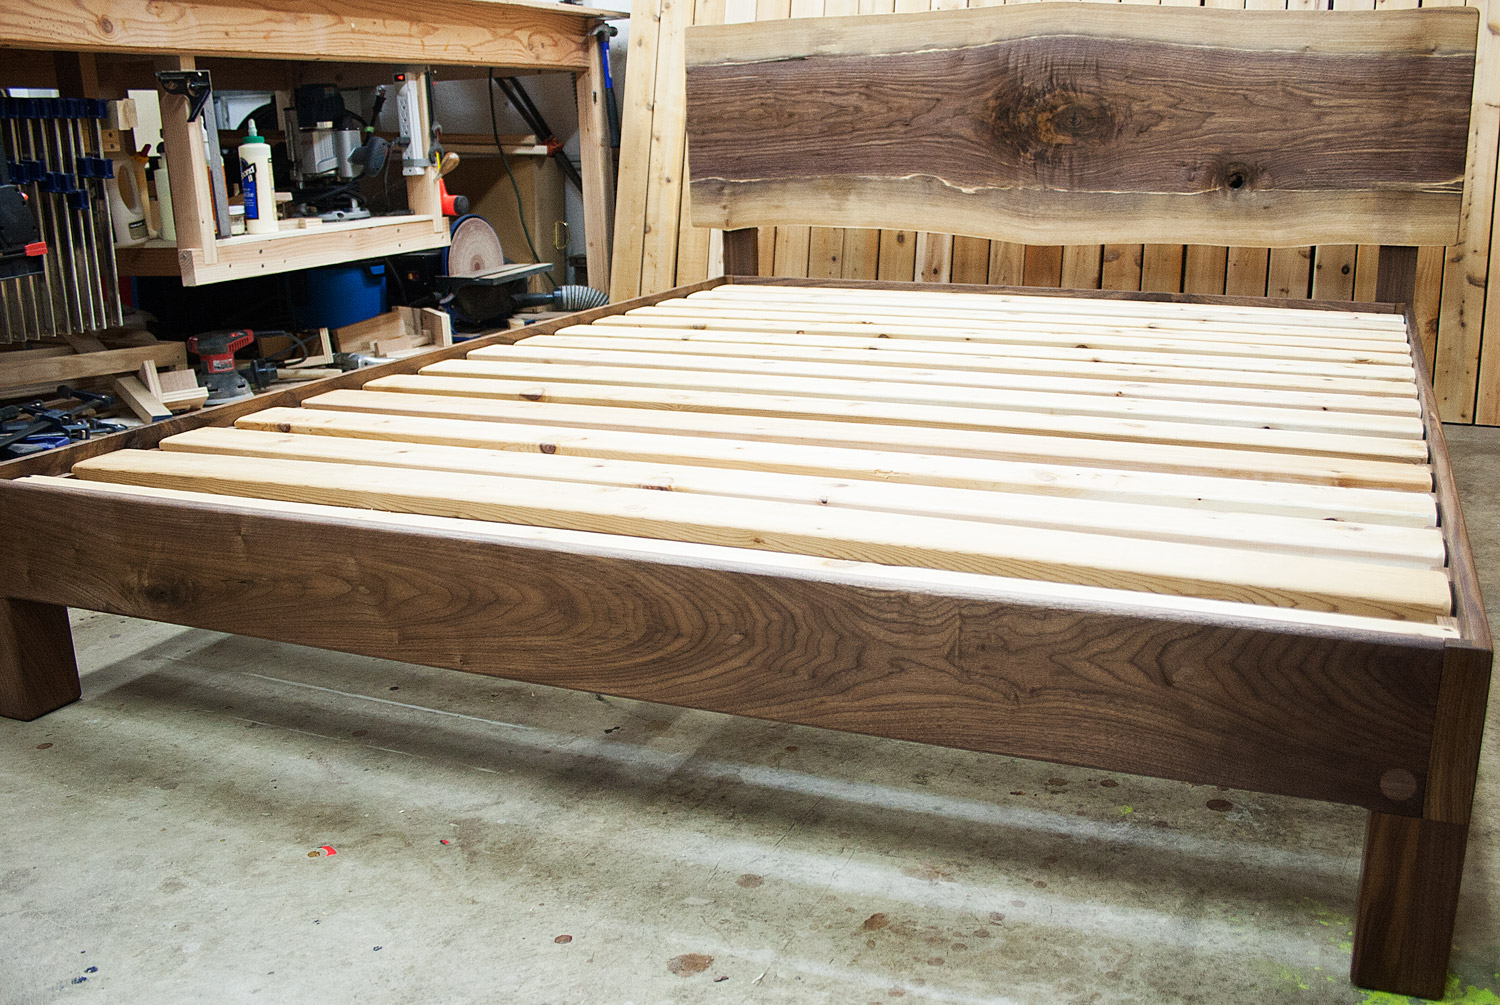 Live-edge walnut slab headboard and frame